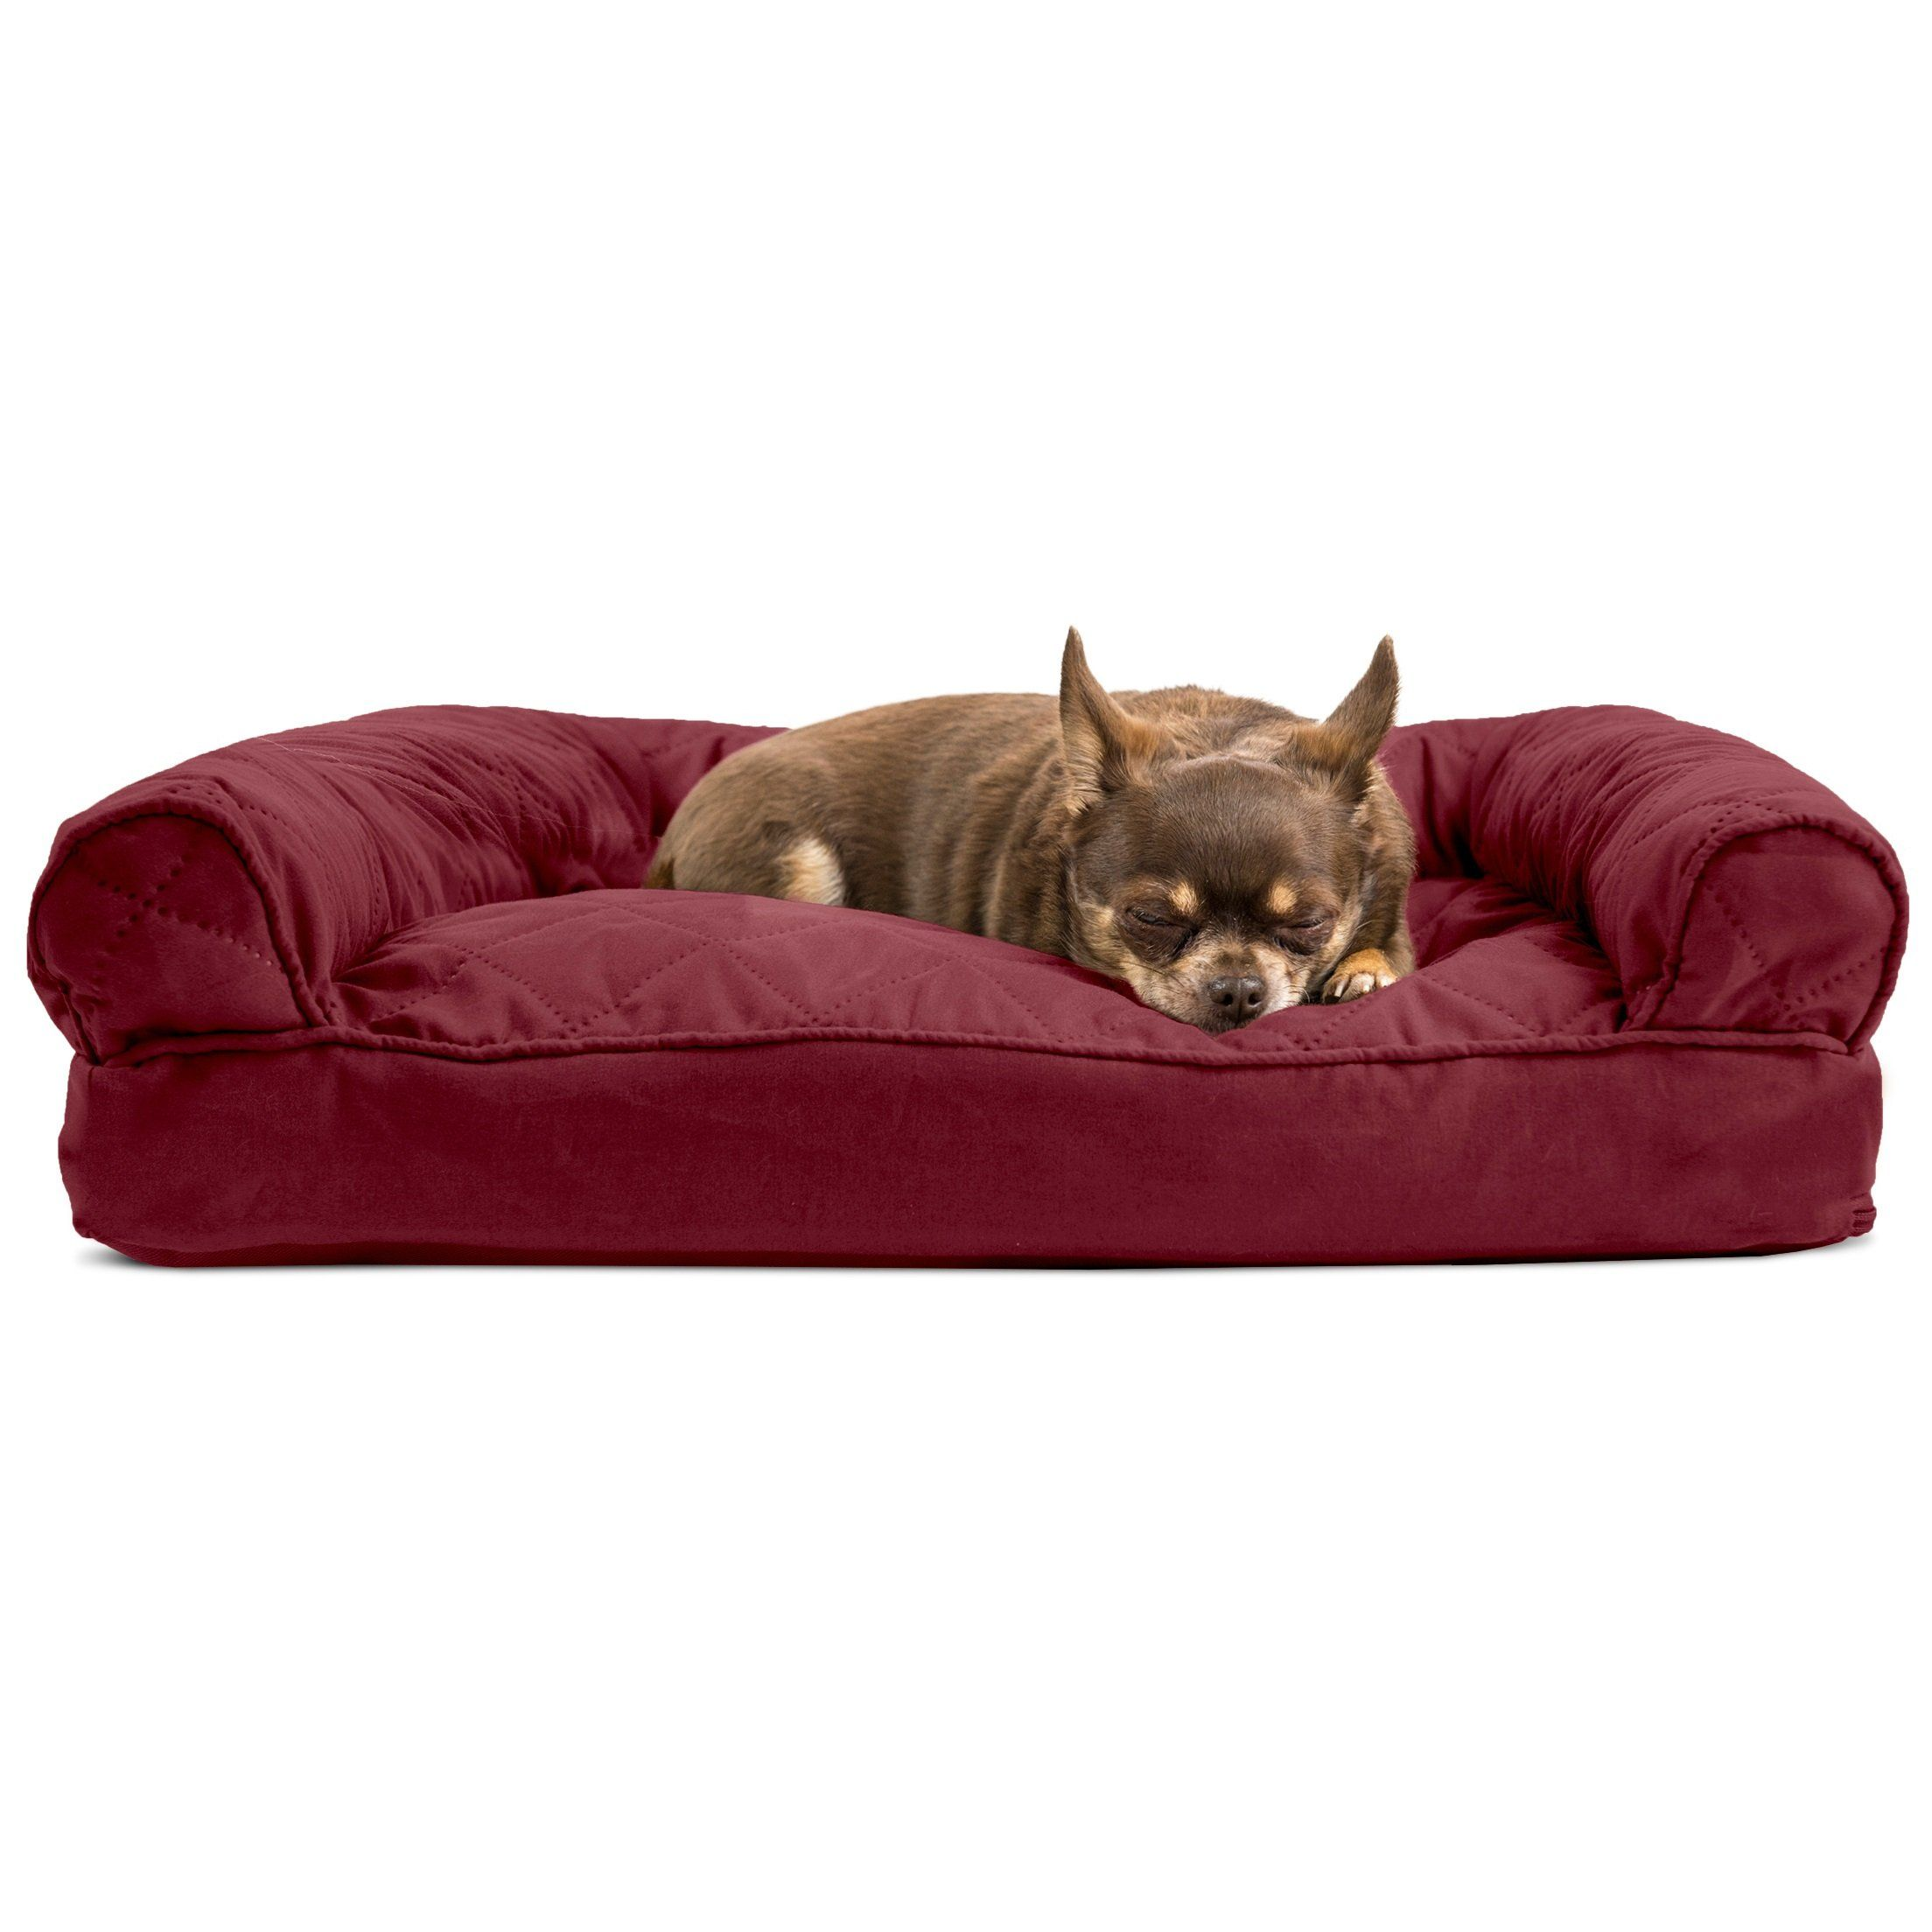 Cool Medium 1 Piece Red Burgundy Color Quilted Pillow Sofa Style Bralicious Painted Fabric Chair Ideas Braliciousco